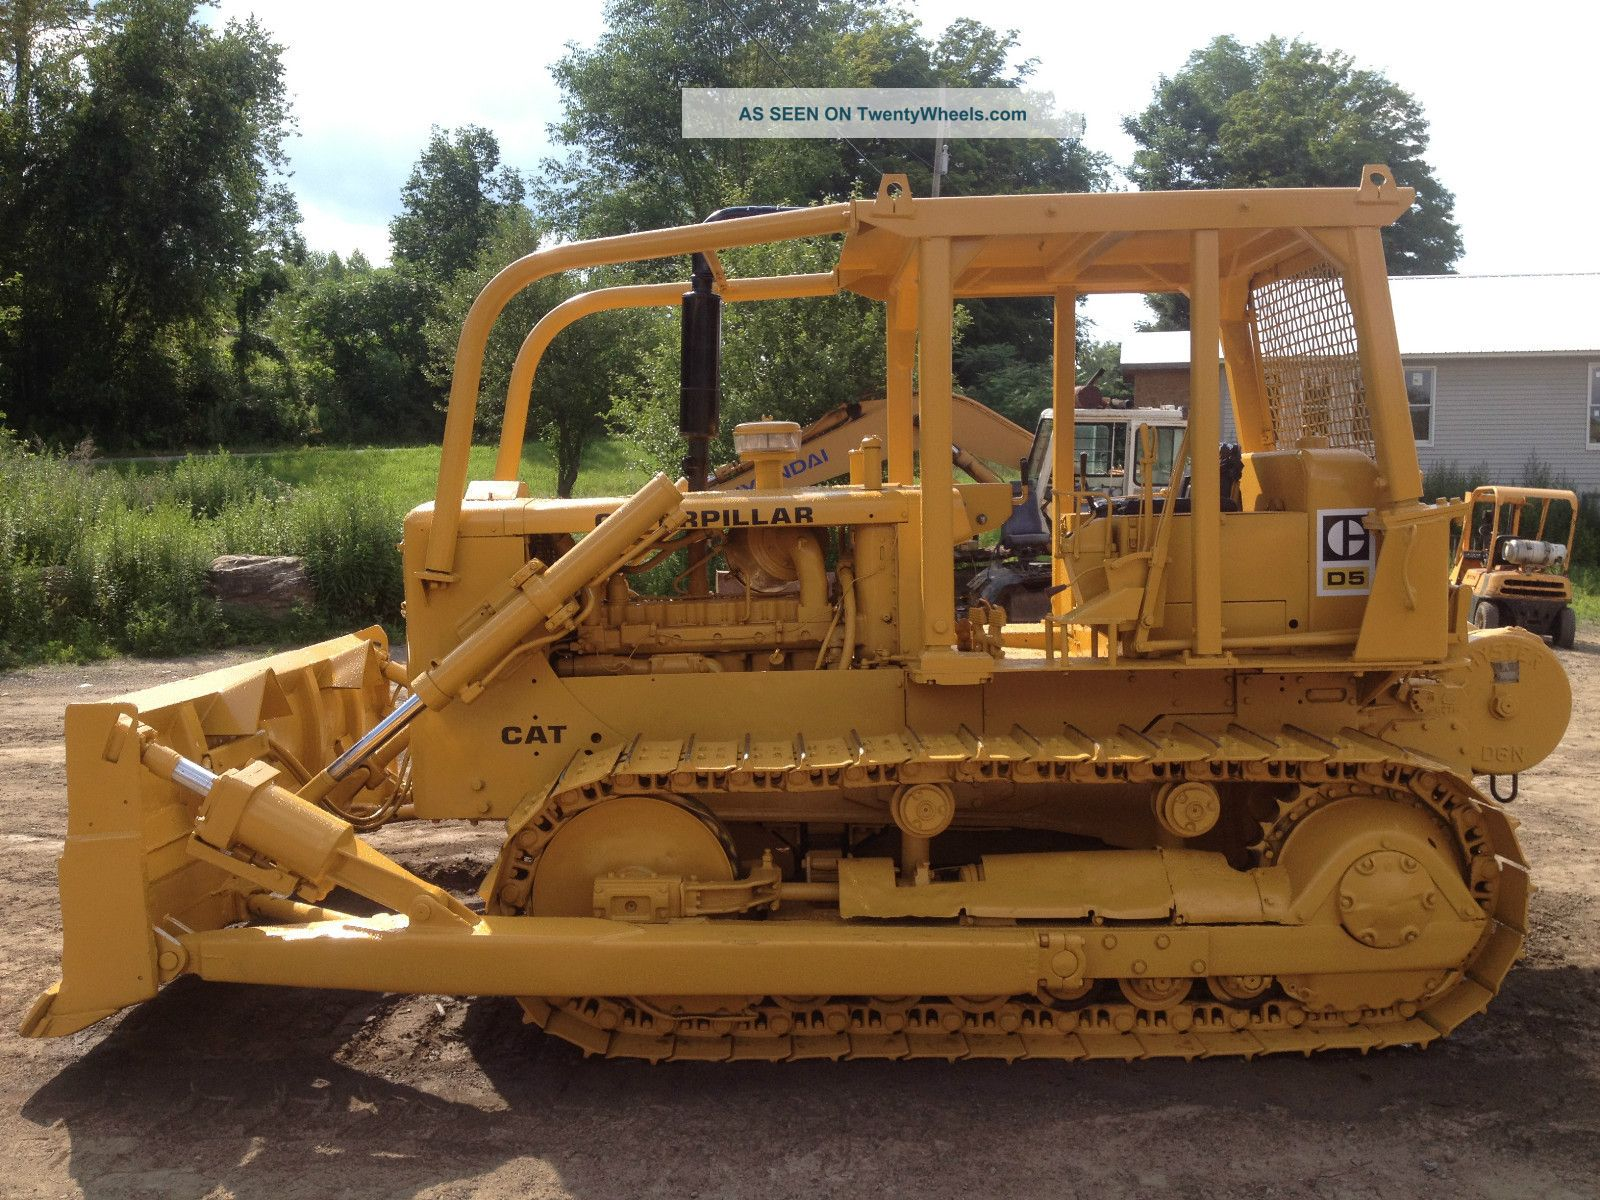 Caterpillar d5 photo - 7